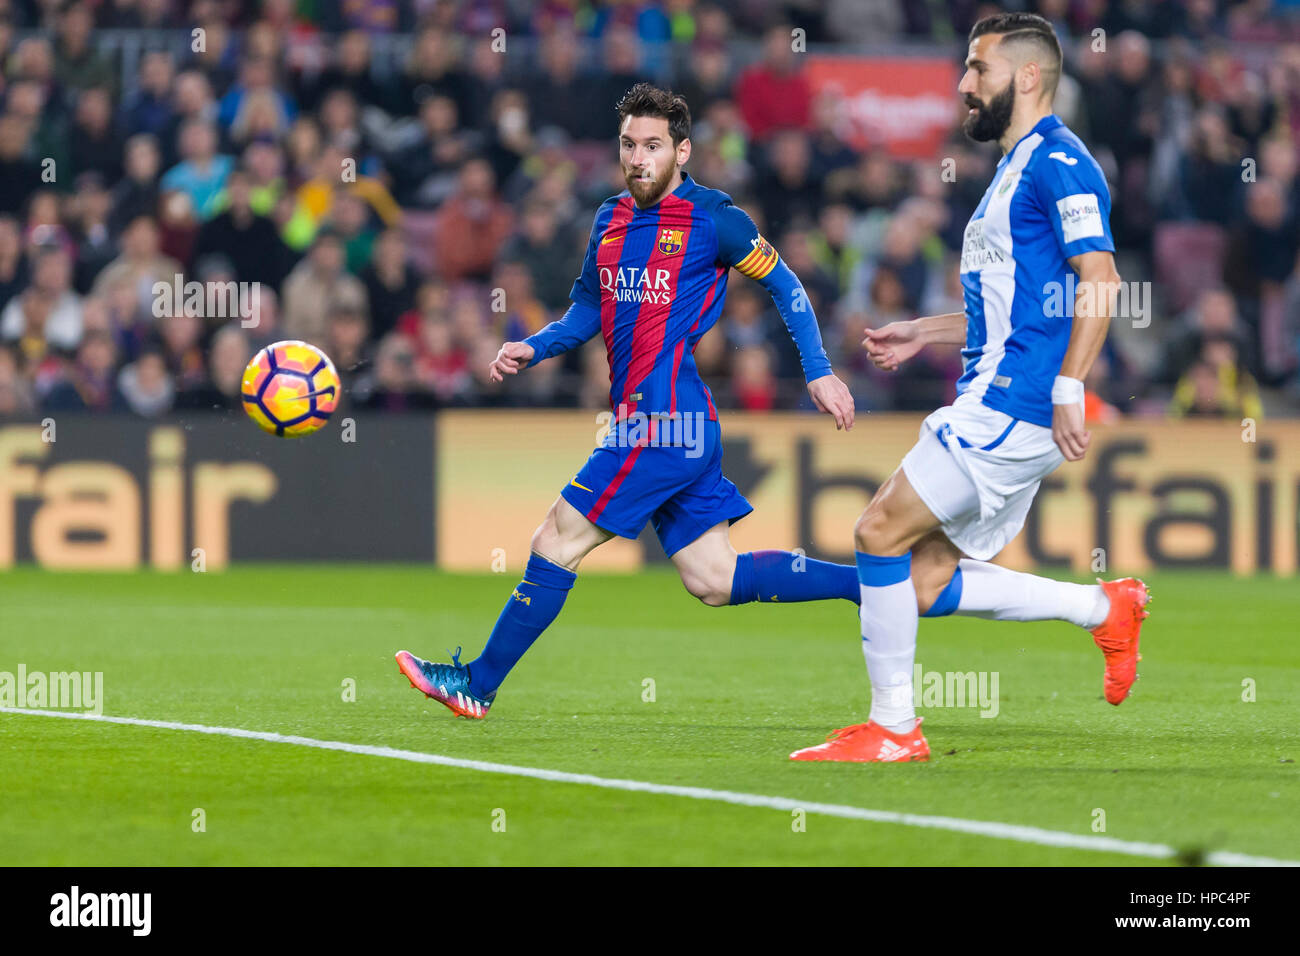 February 19, 2017: Leo Messi during the match between FC Barcelona vs Leganes, for the round 21 of the Liga Santander, - Stock Image